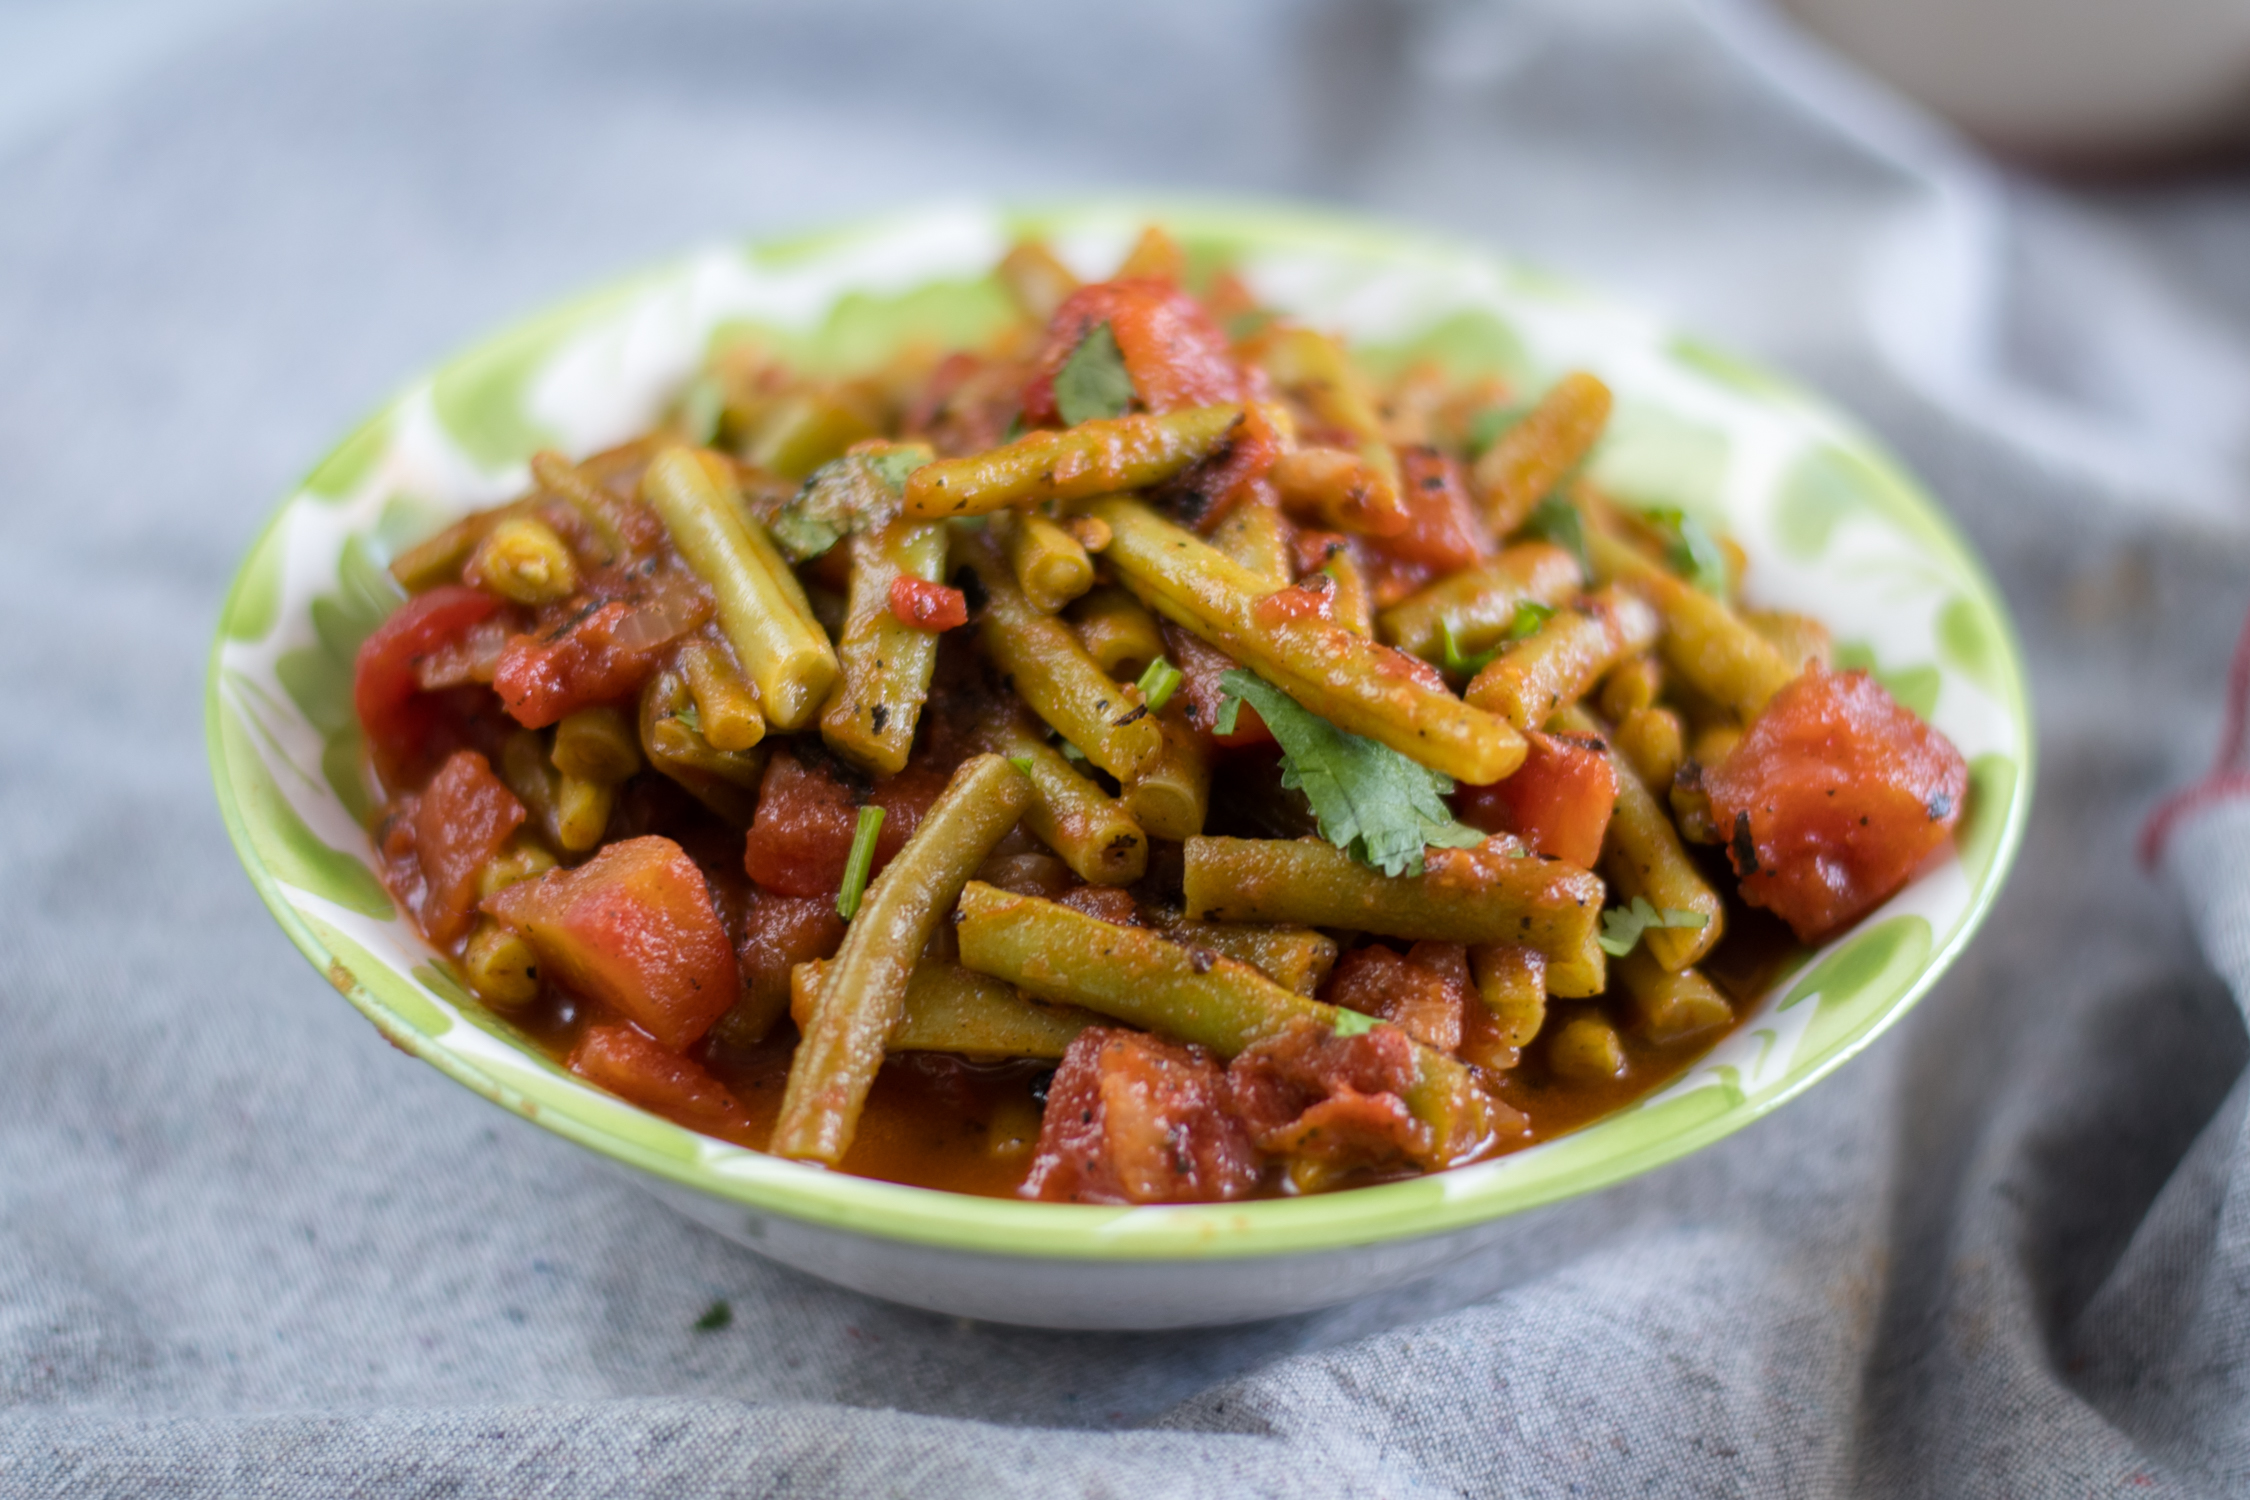 Chipotle green beans with tomatoes are a simple dish dish. Simple to make too! #vegan #beans #Mexican #summer #greenbeans